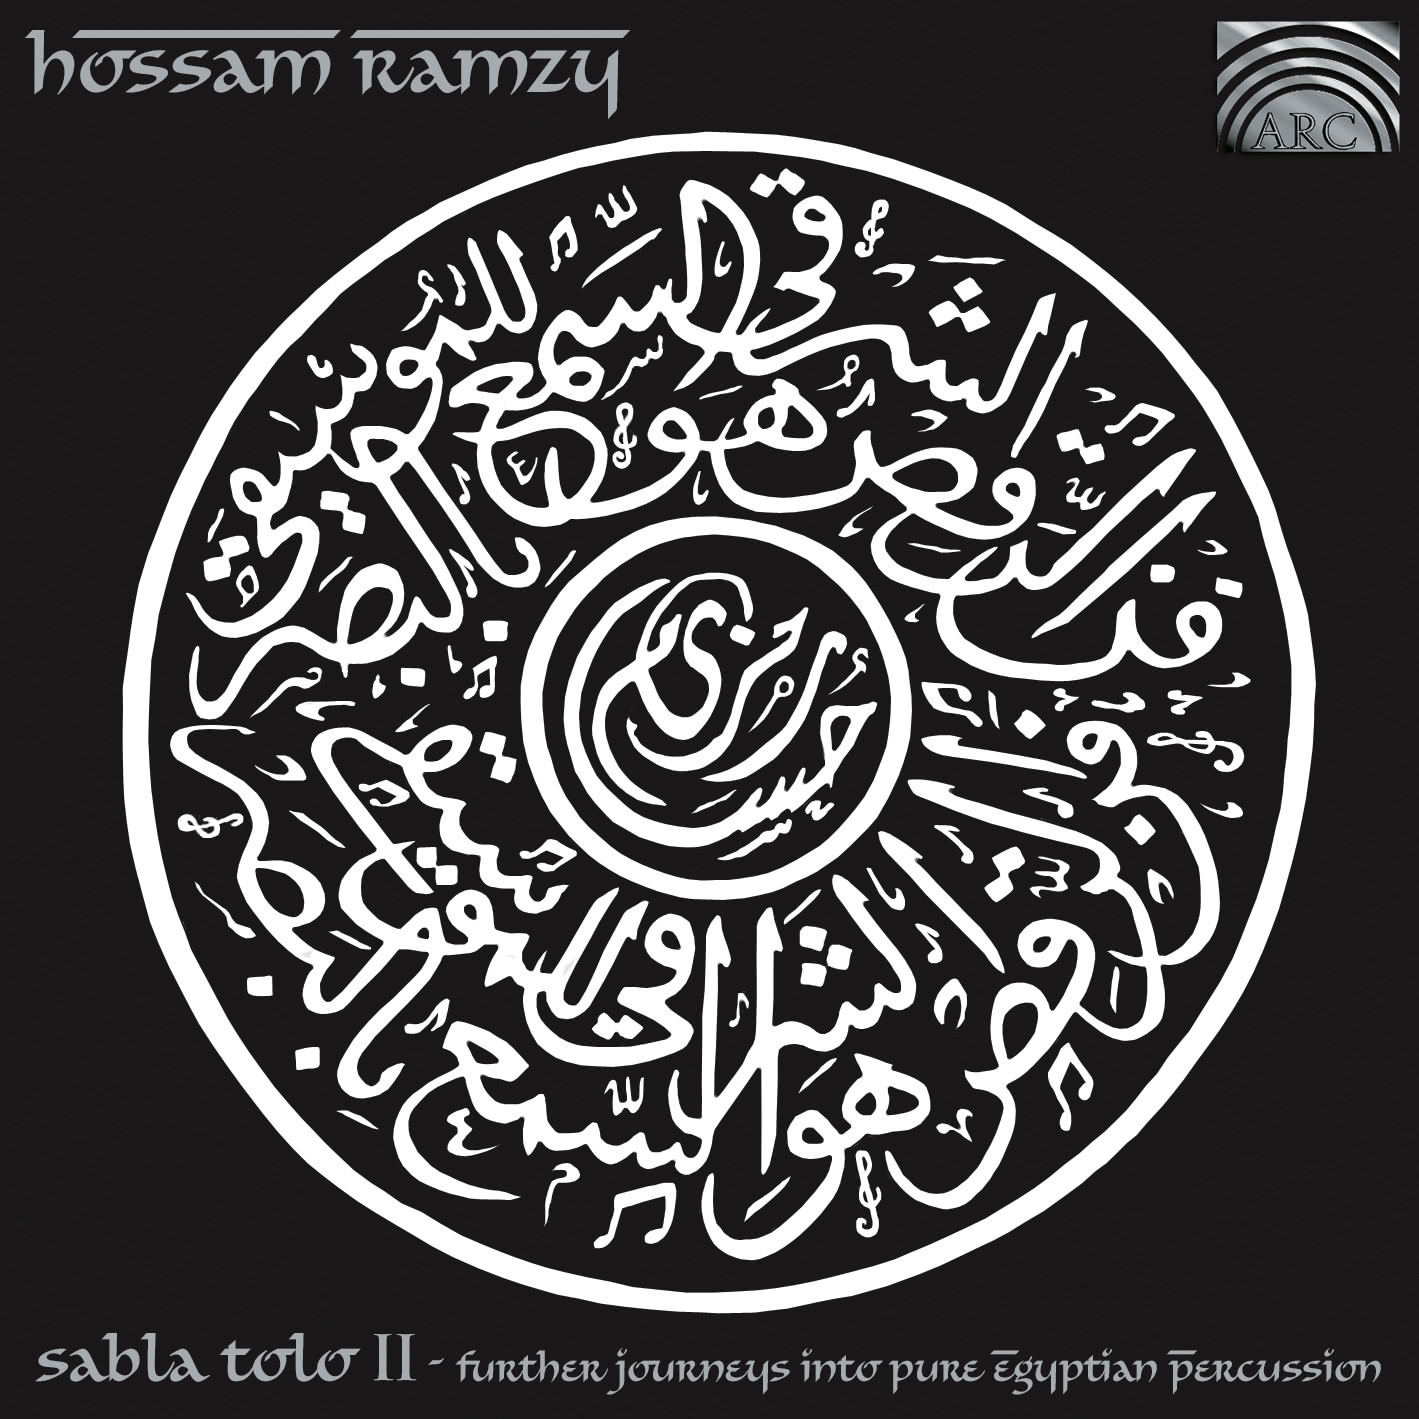 EUCD1806 Sabla Tolo II - Further Journeys into pure Egyptian Percussion